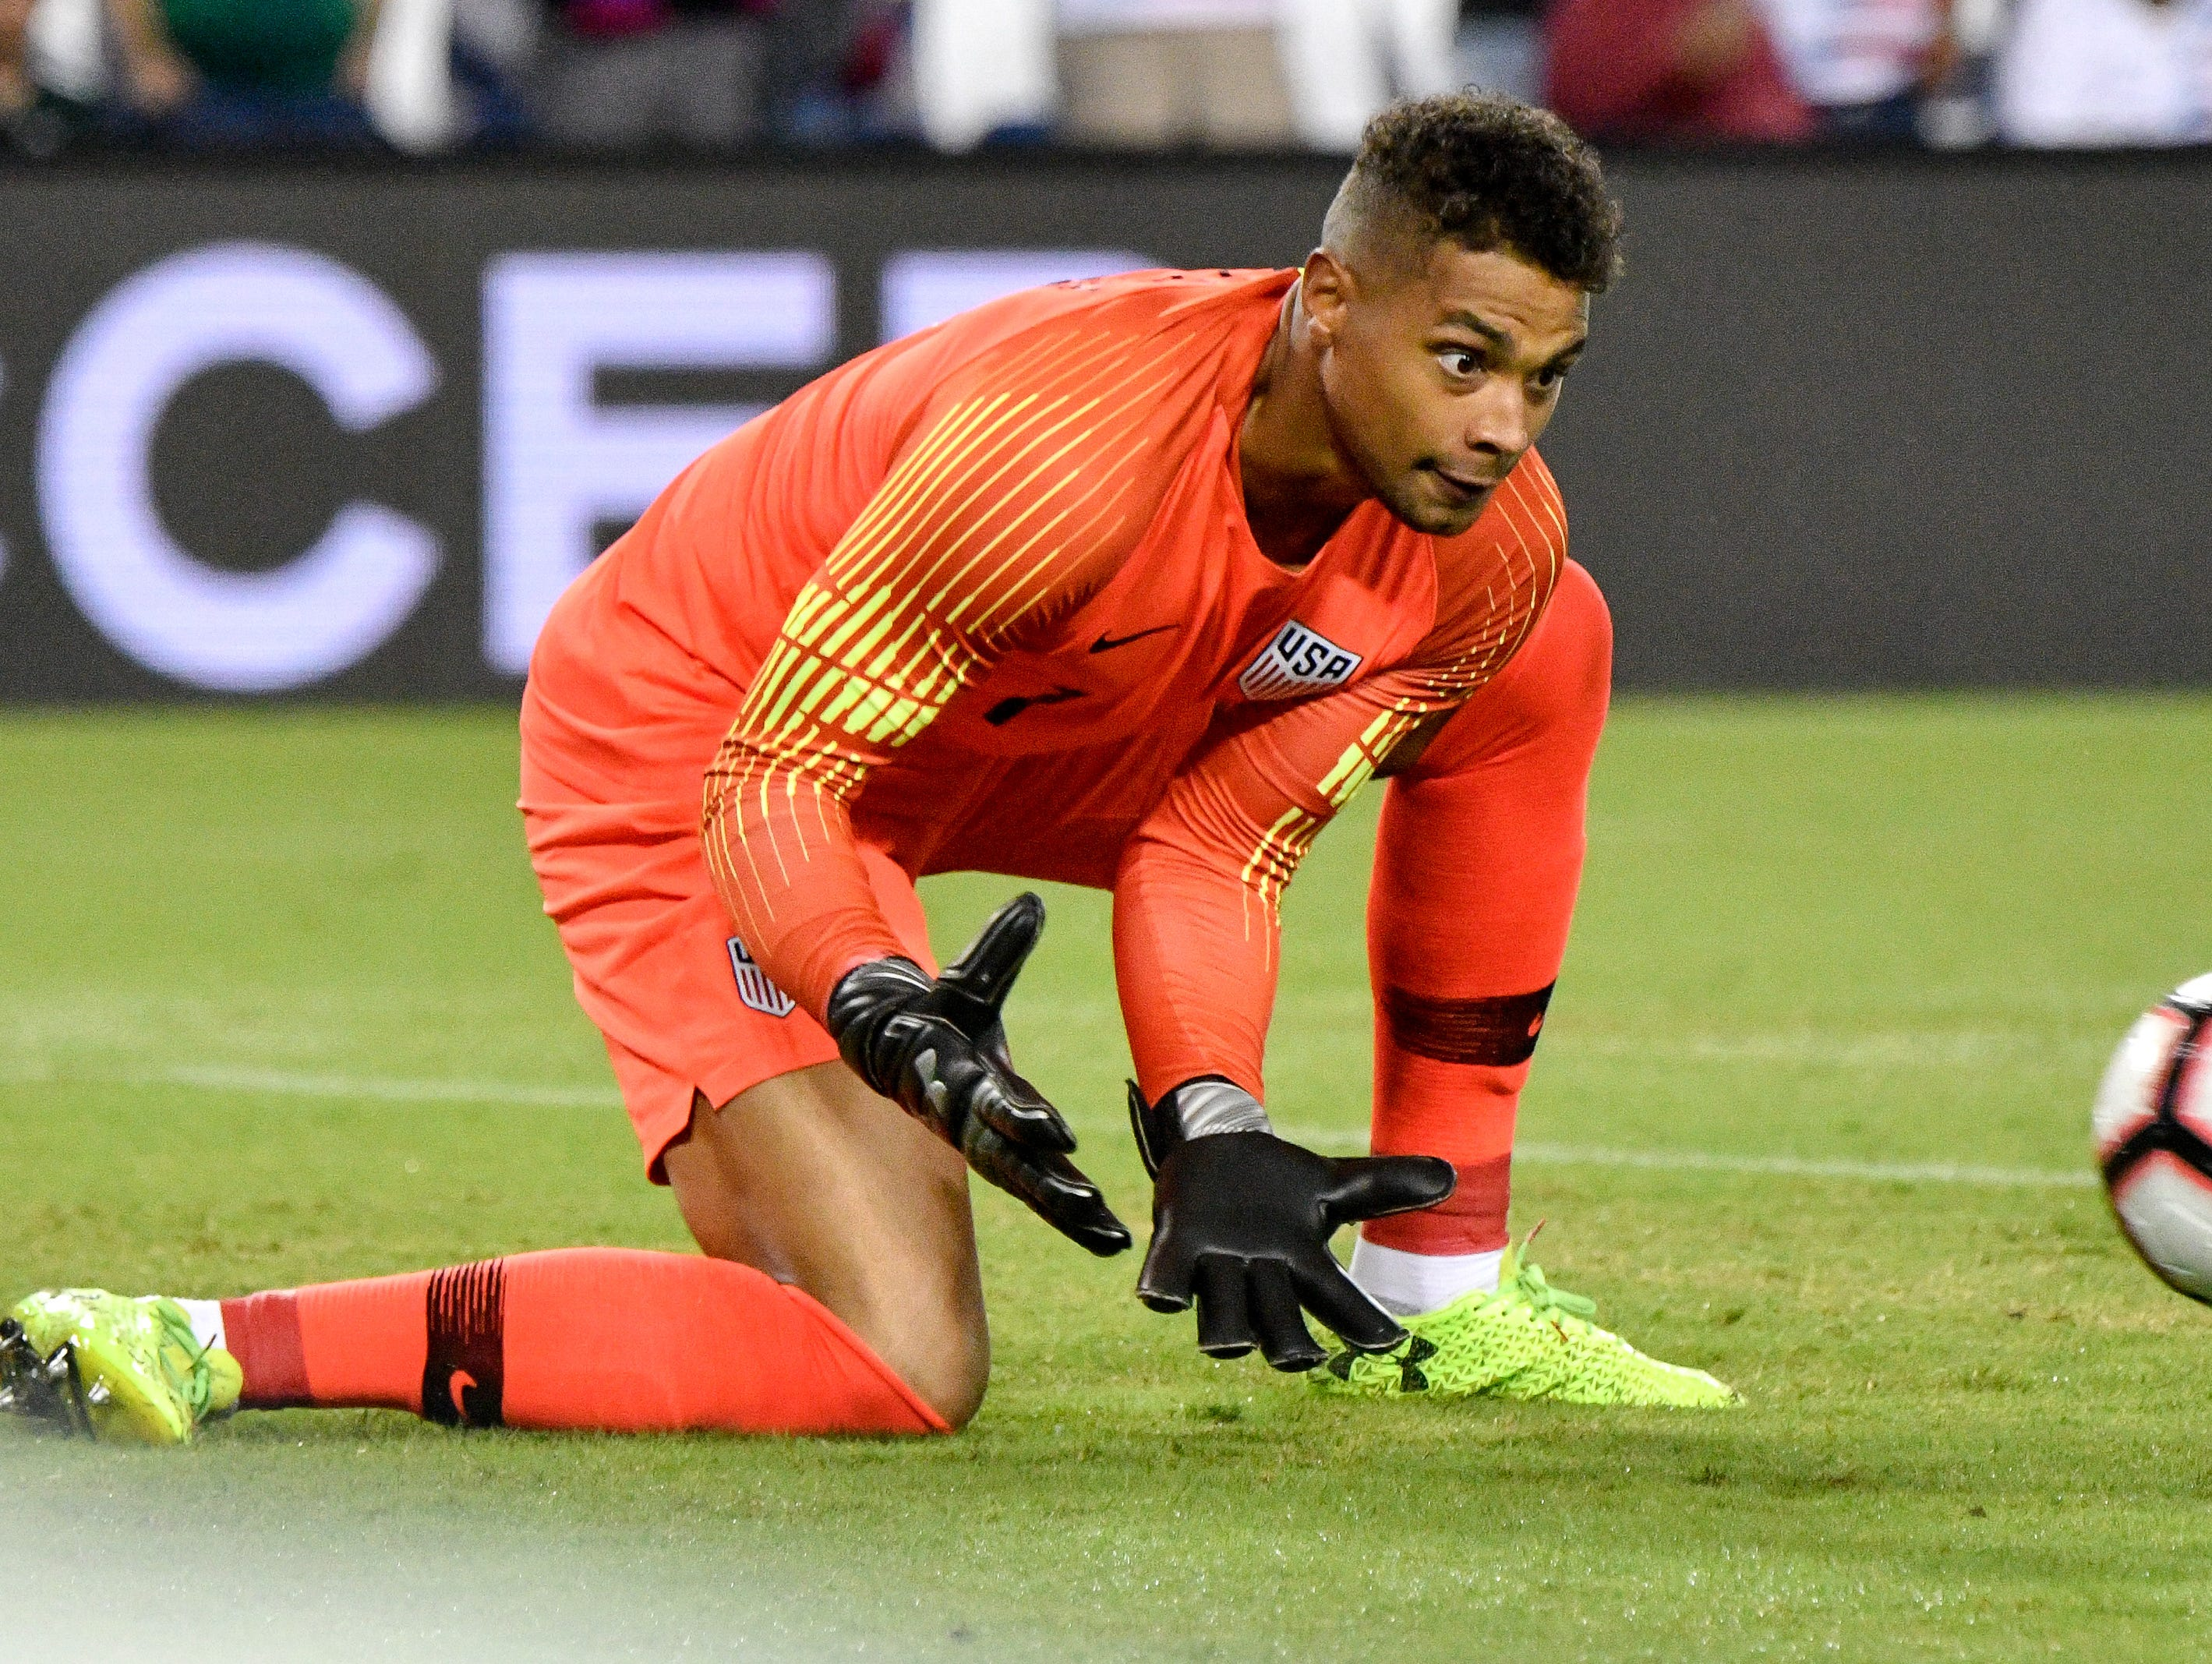 USA goalkeeper Zack Steffen (1) scoops up the ball during the second half against Mexico at Nissan Stadium in Nashville, Tenn., Tuesday, Sept. 11, 2018.